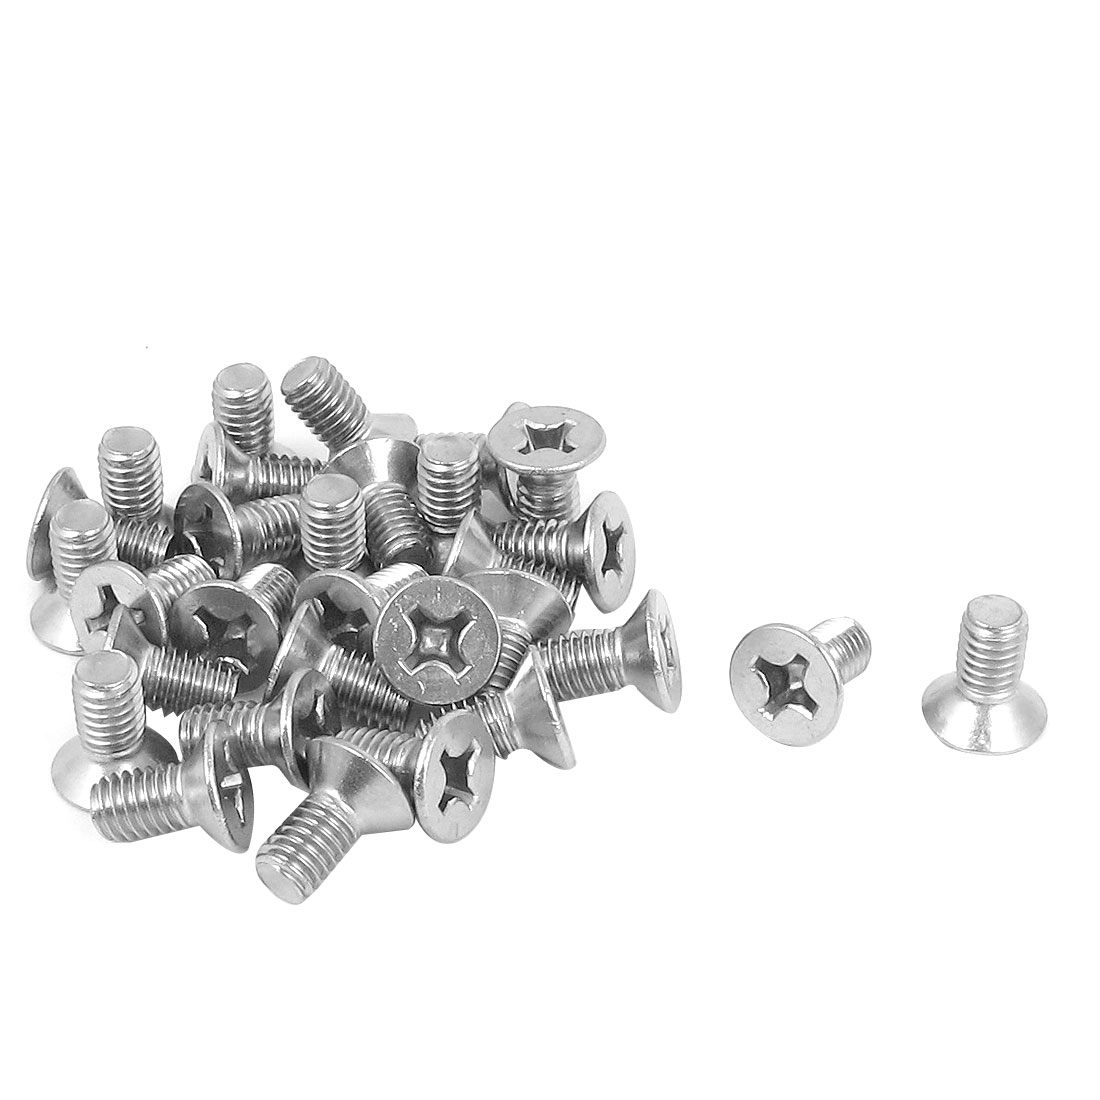 M6 x 12mm Metric Phillips Flat Head Countersunk Bolts Machine Screws 30pcs